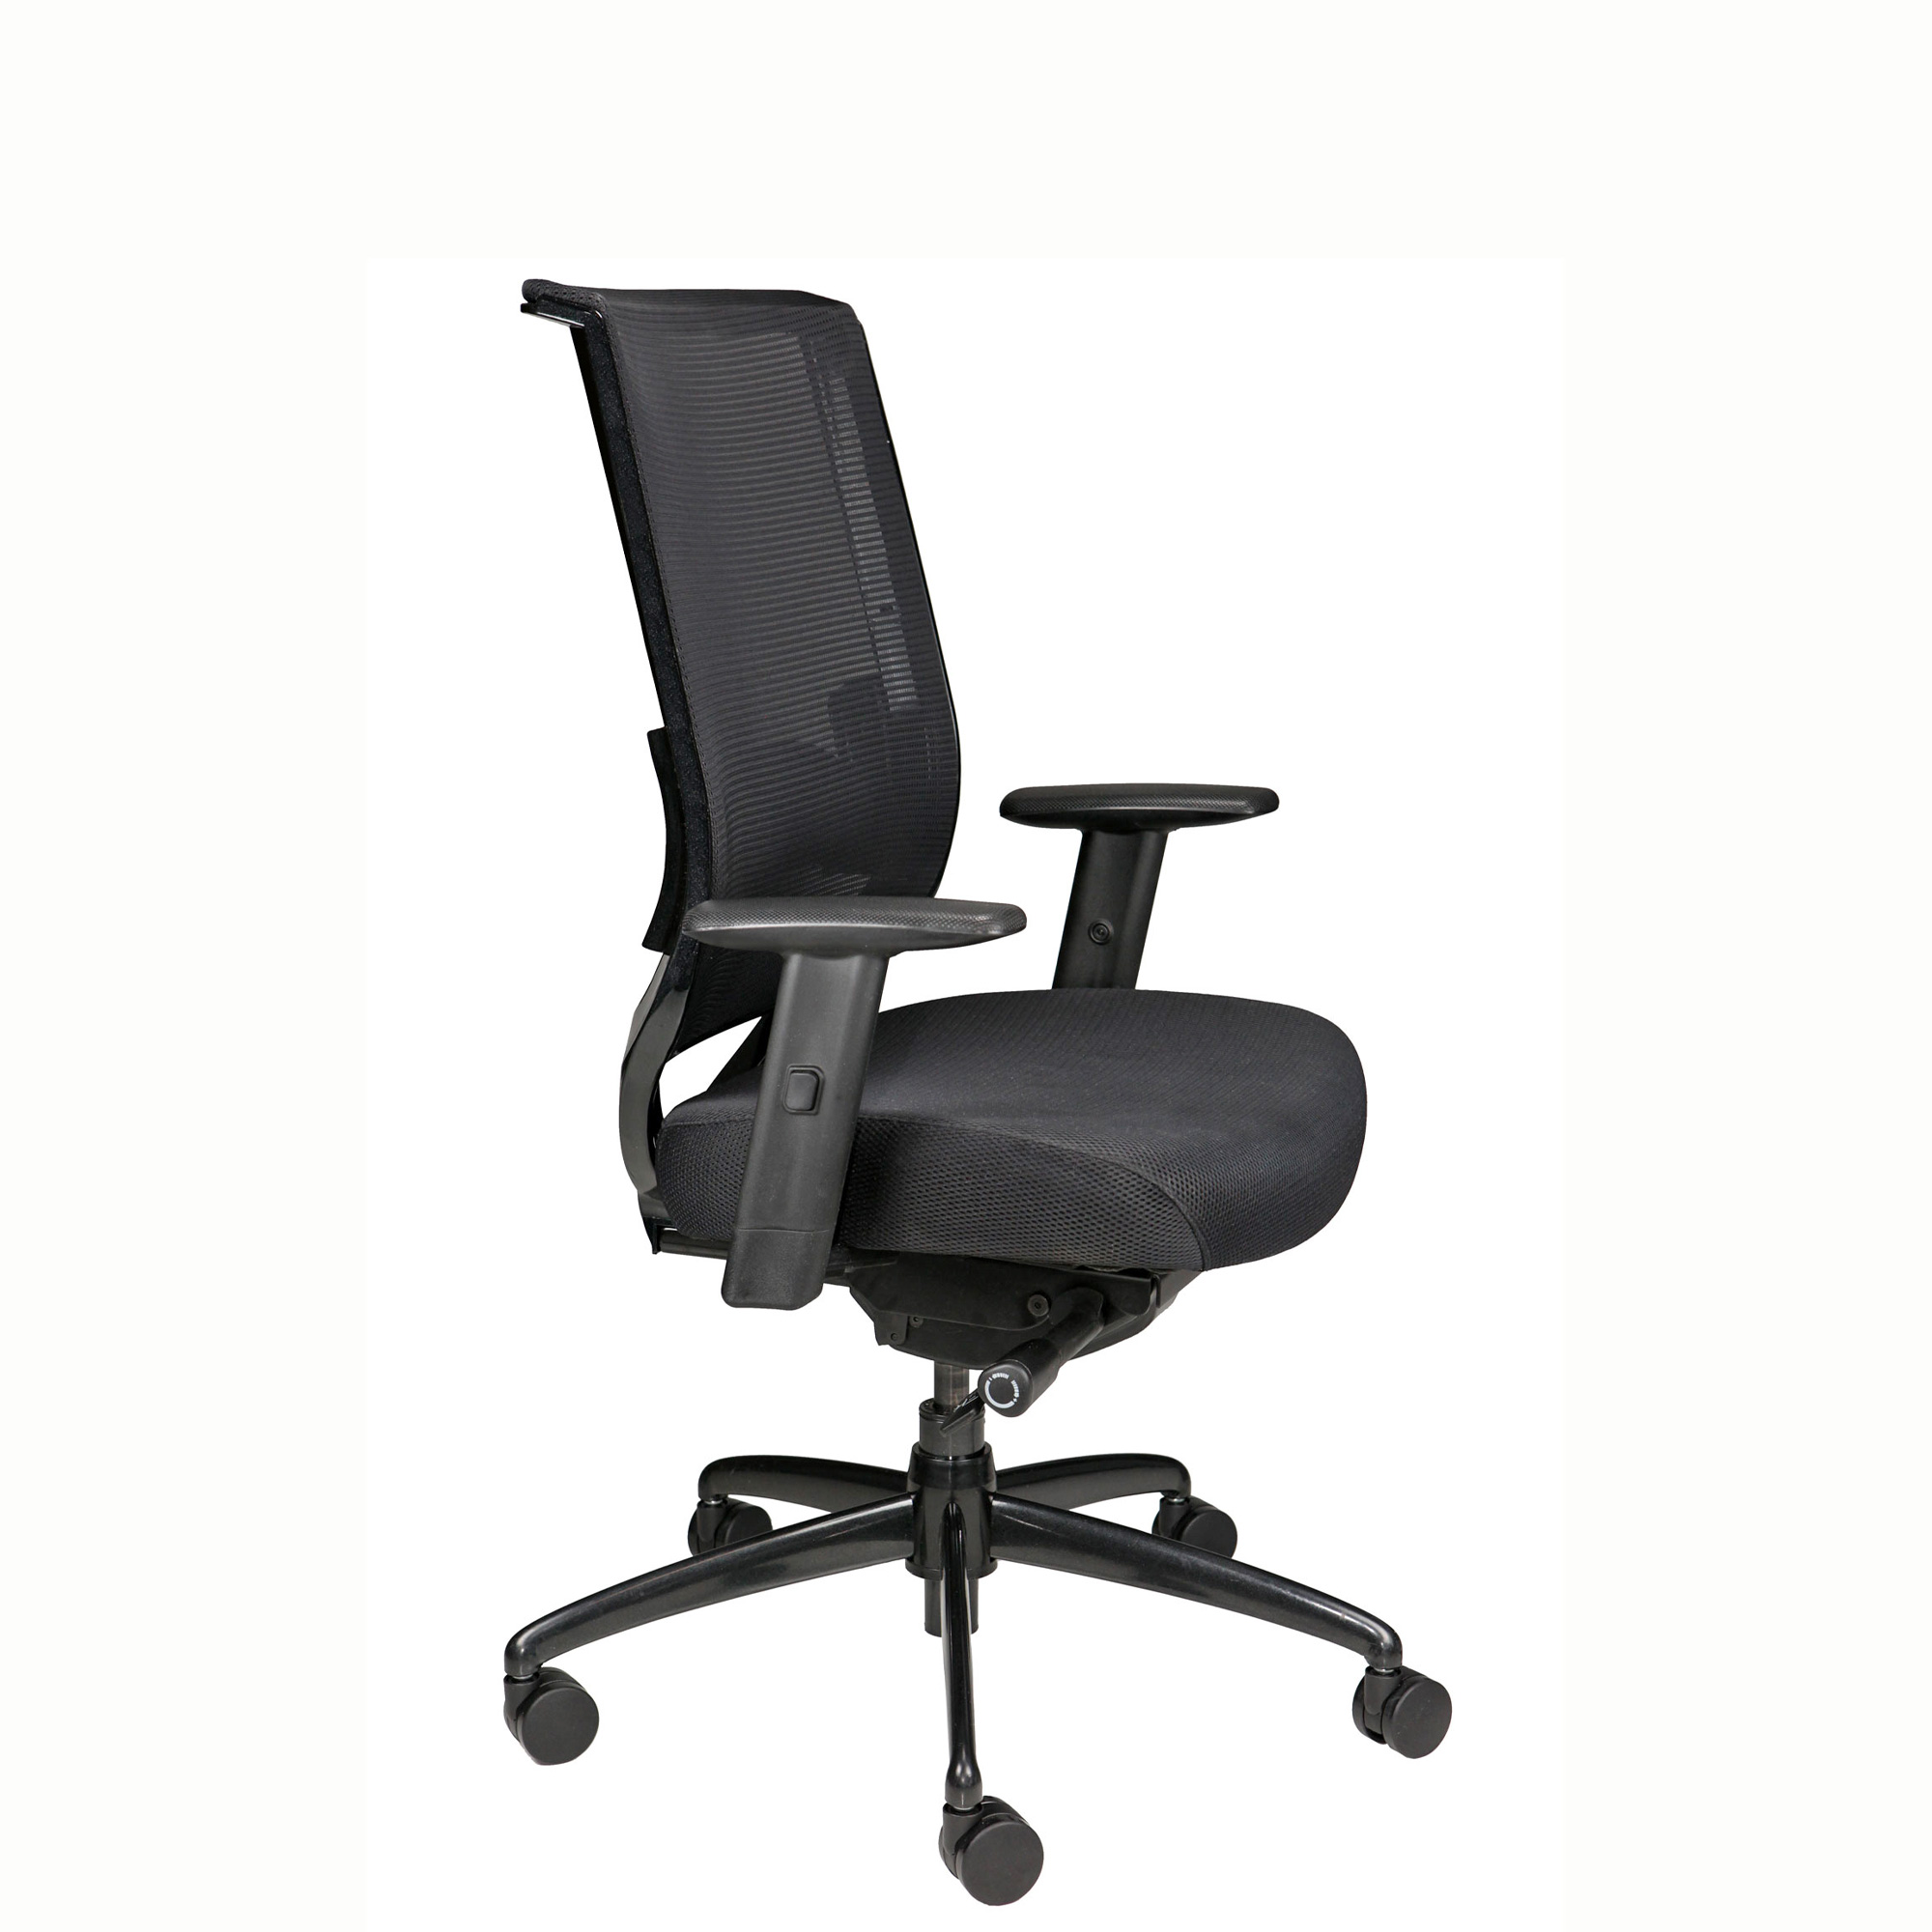 Nifty Mesh-Back Chair For Home Office